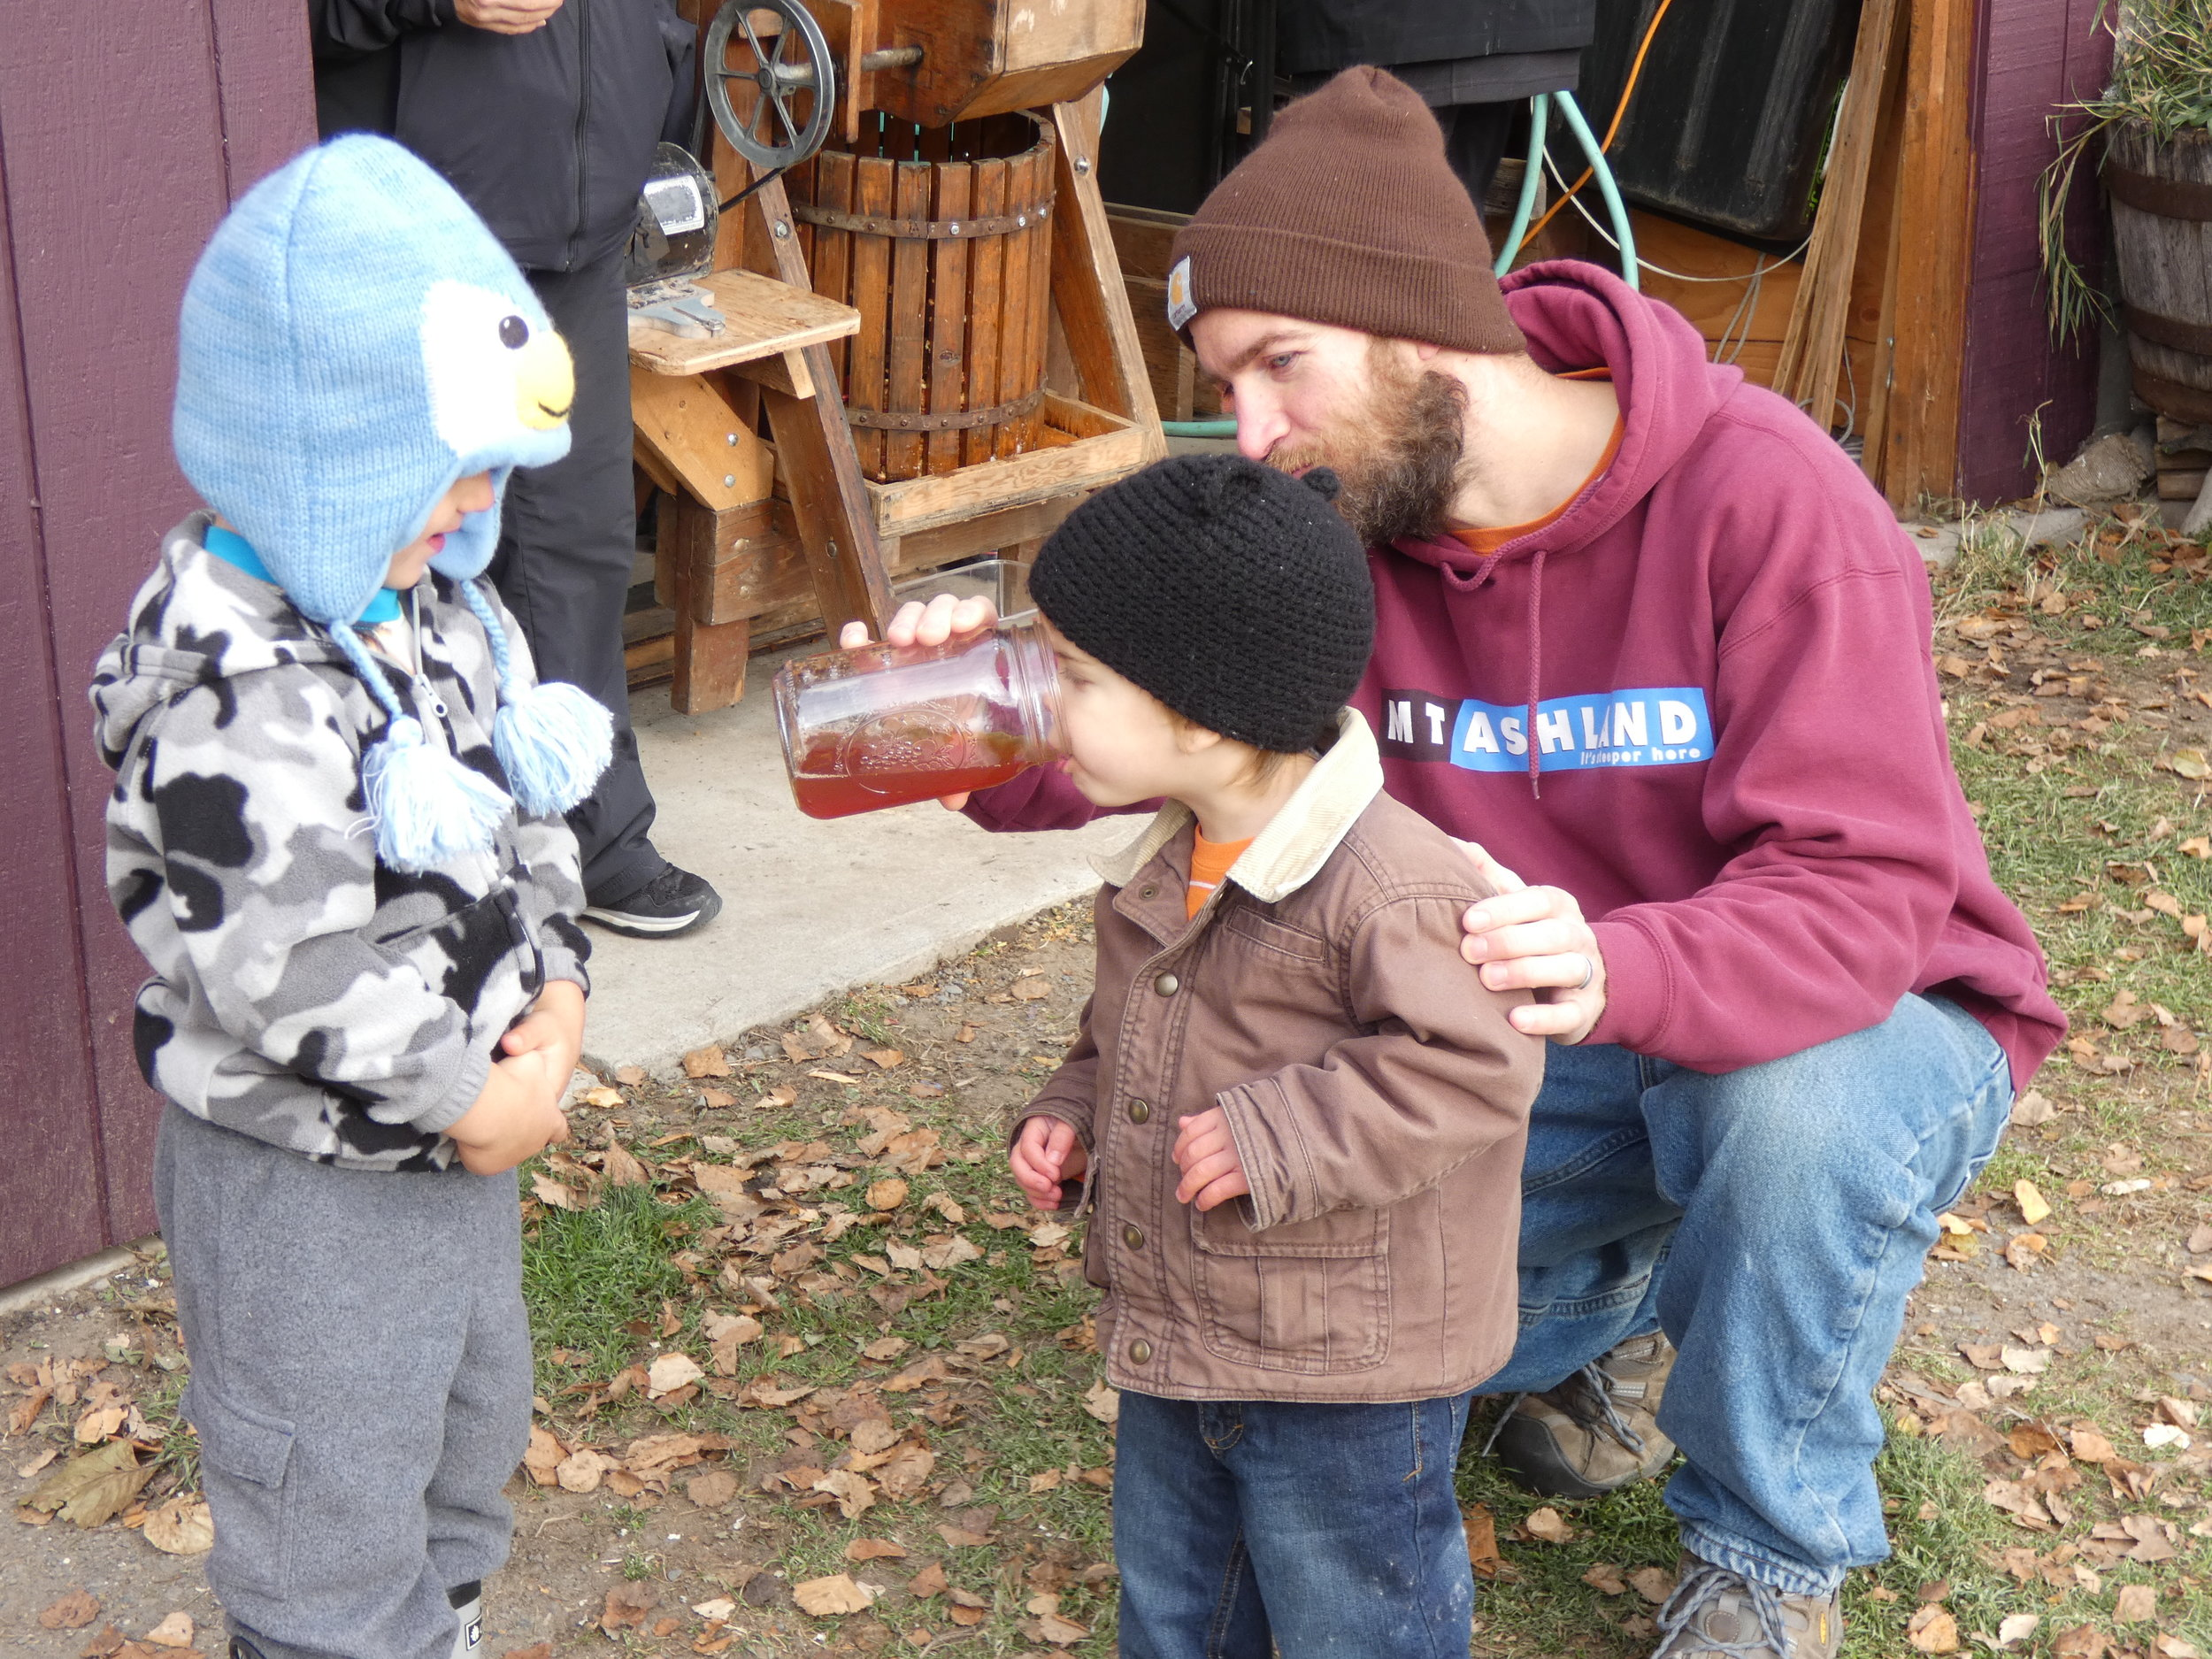 Cider pressing is one of the classses taught at the Homer Folk School